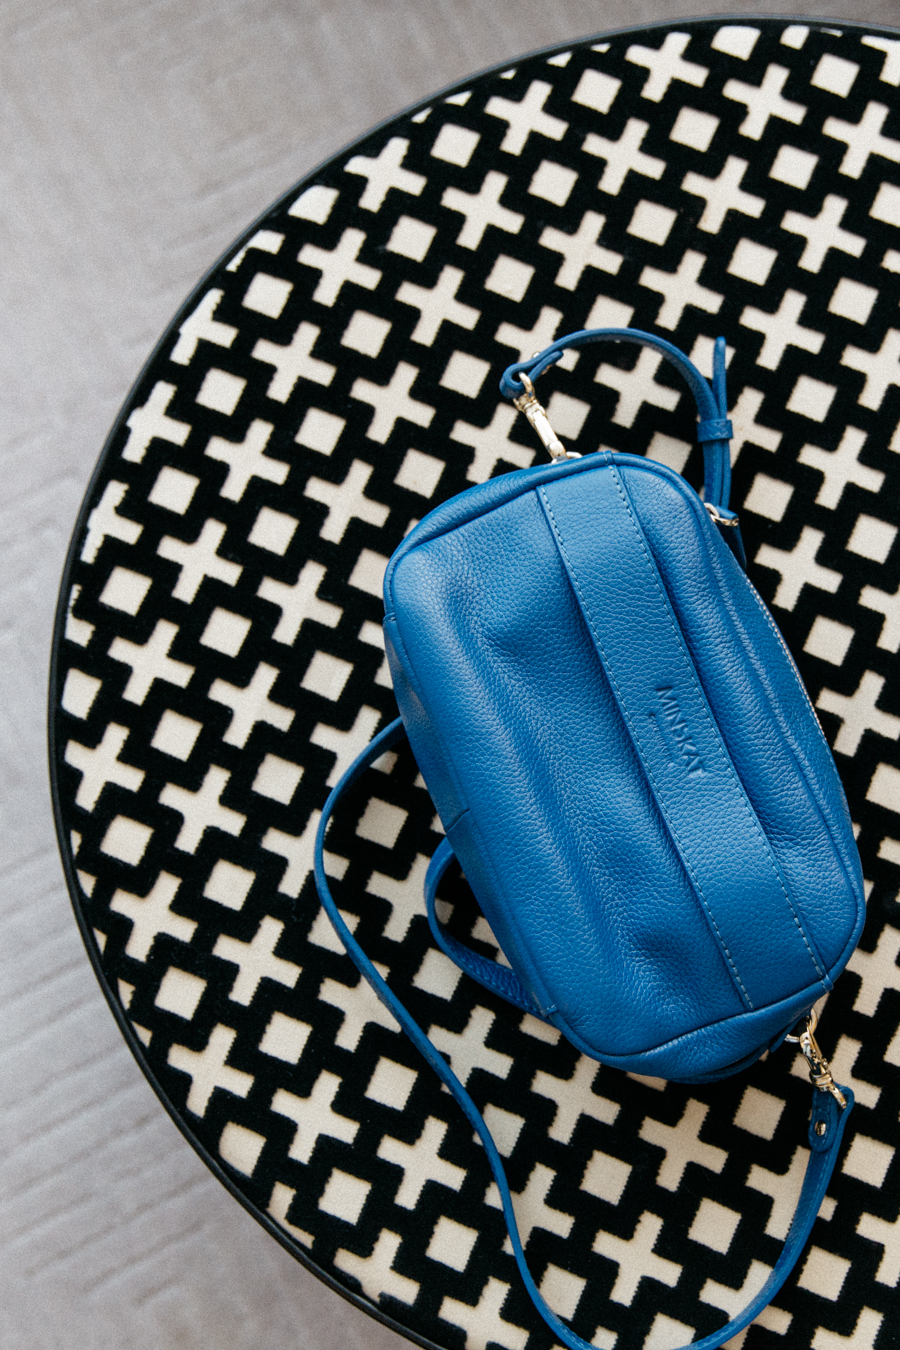 Blue leather bag by Minskat Copenhagen - Isobel bag.